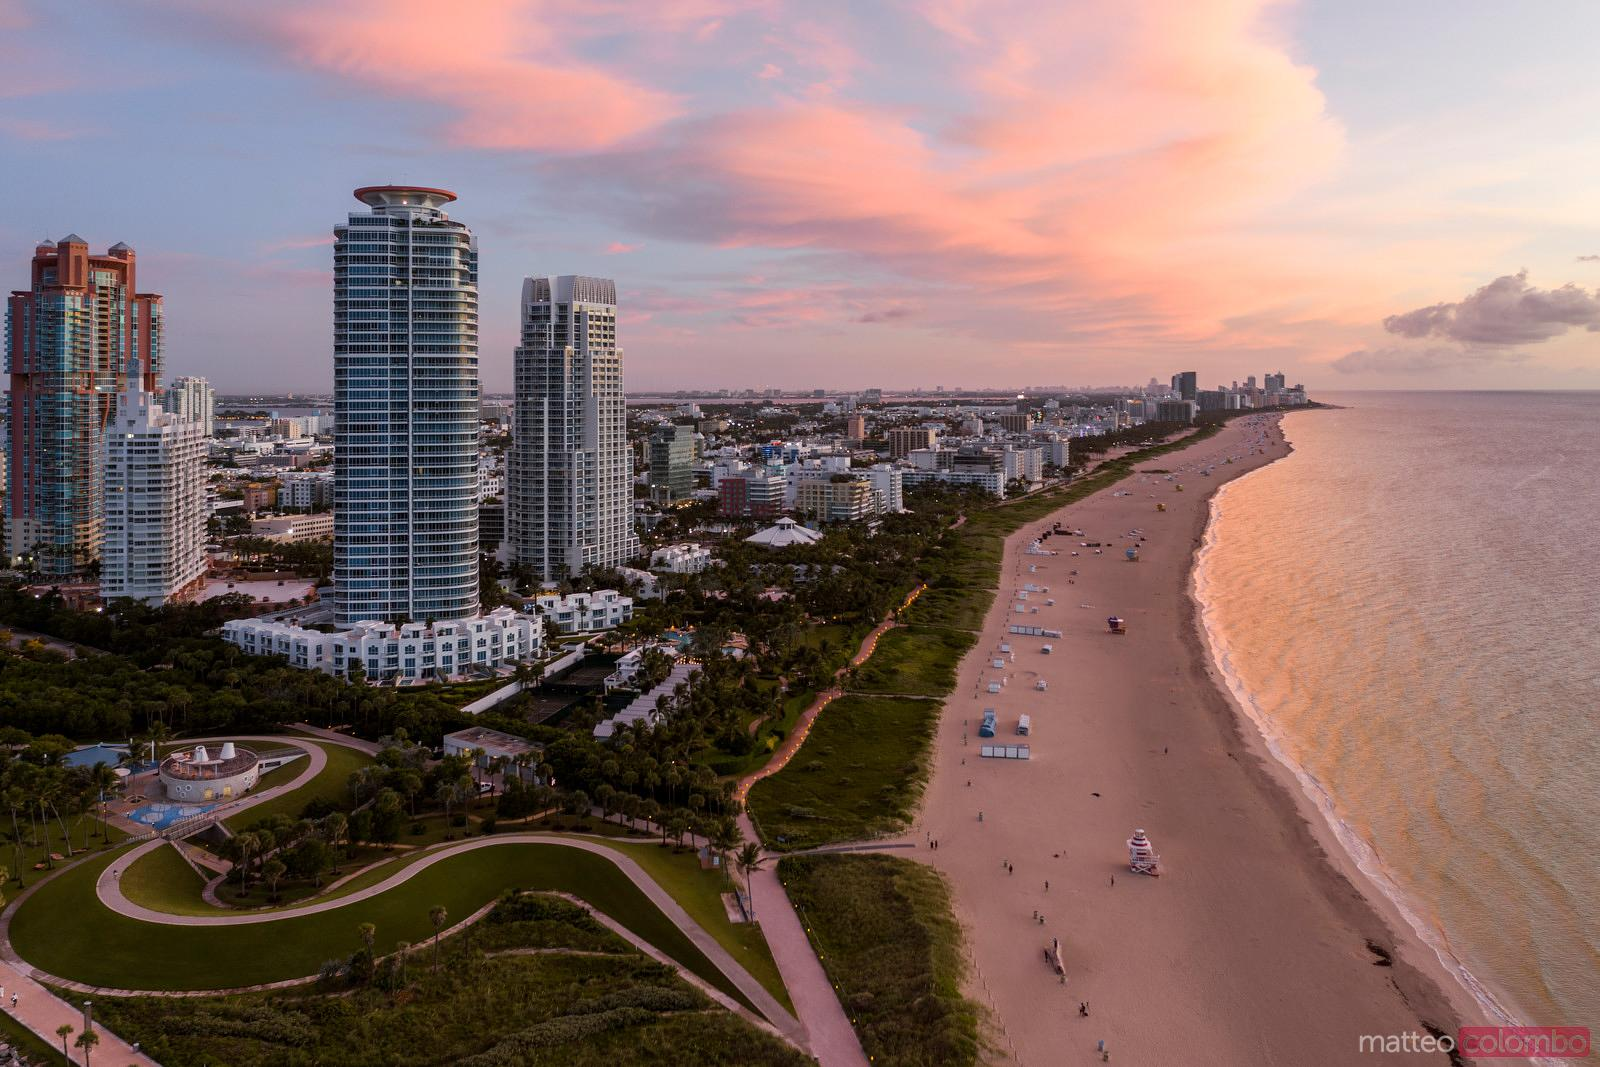 Aerial view of South beach at sunset, Miami, Florida, USA